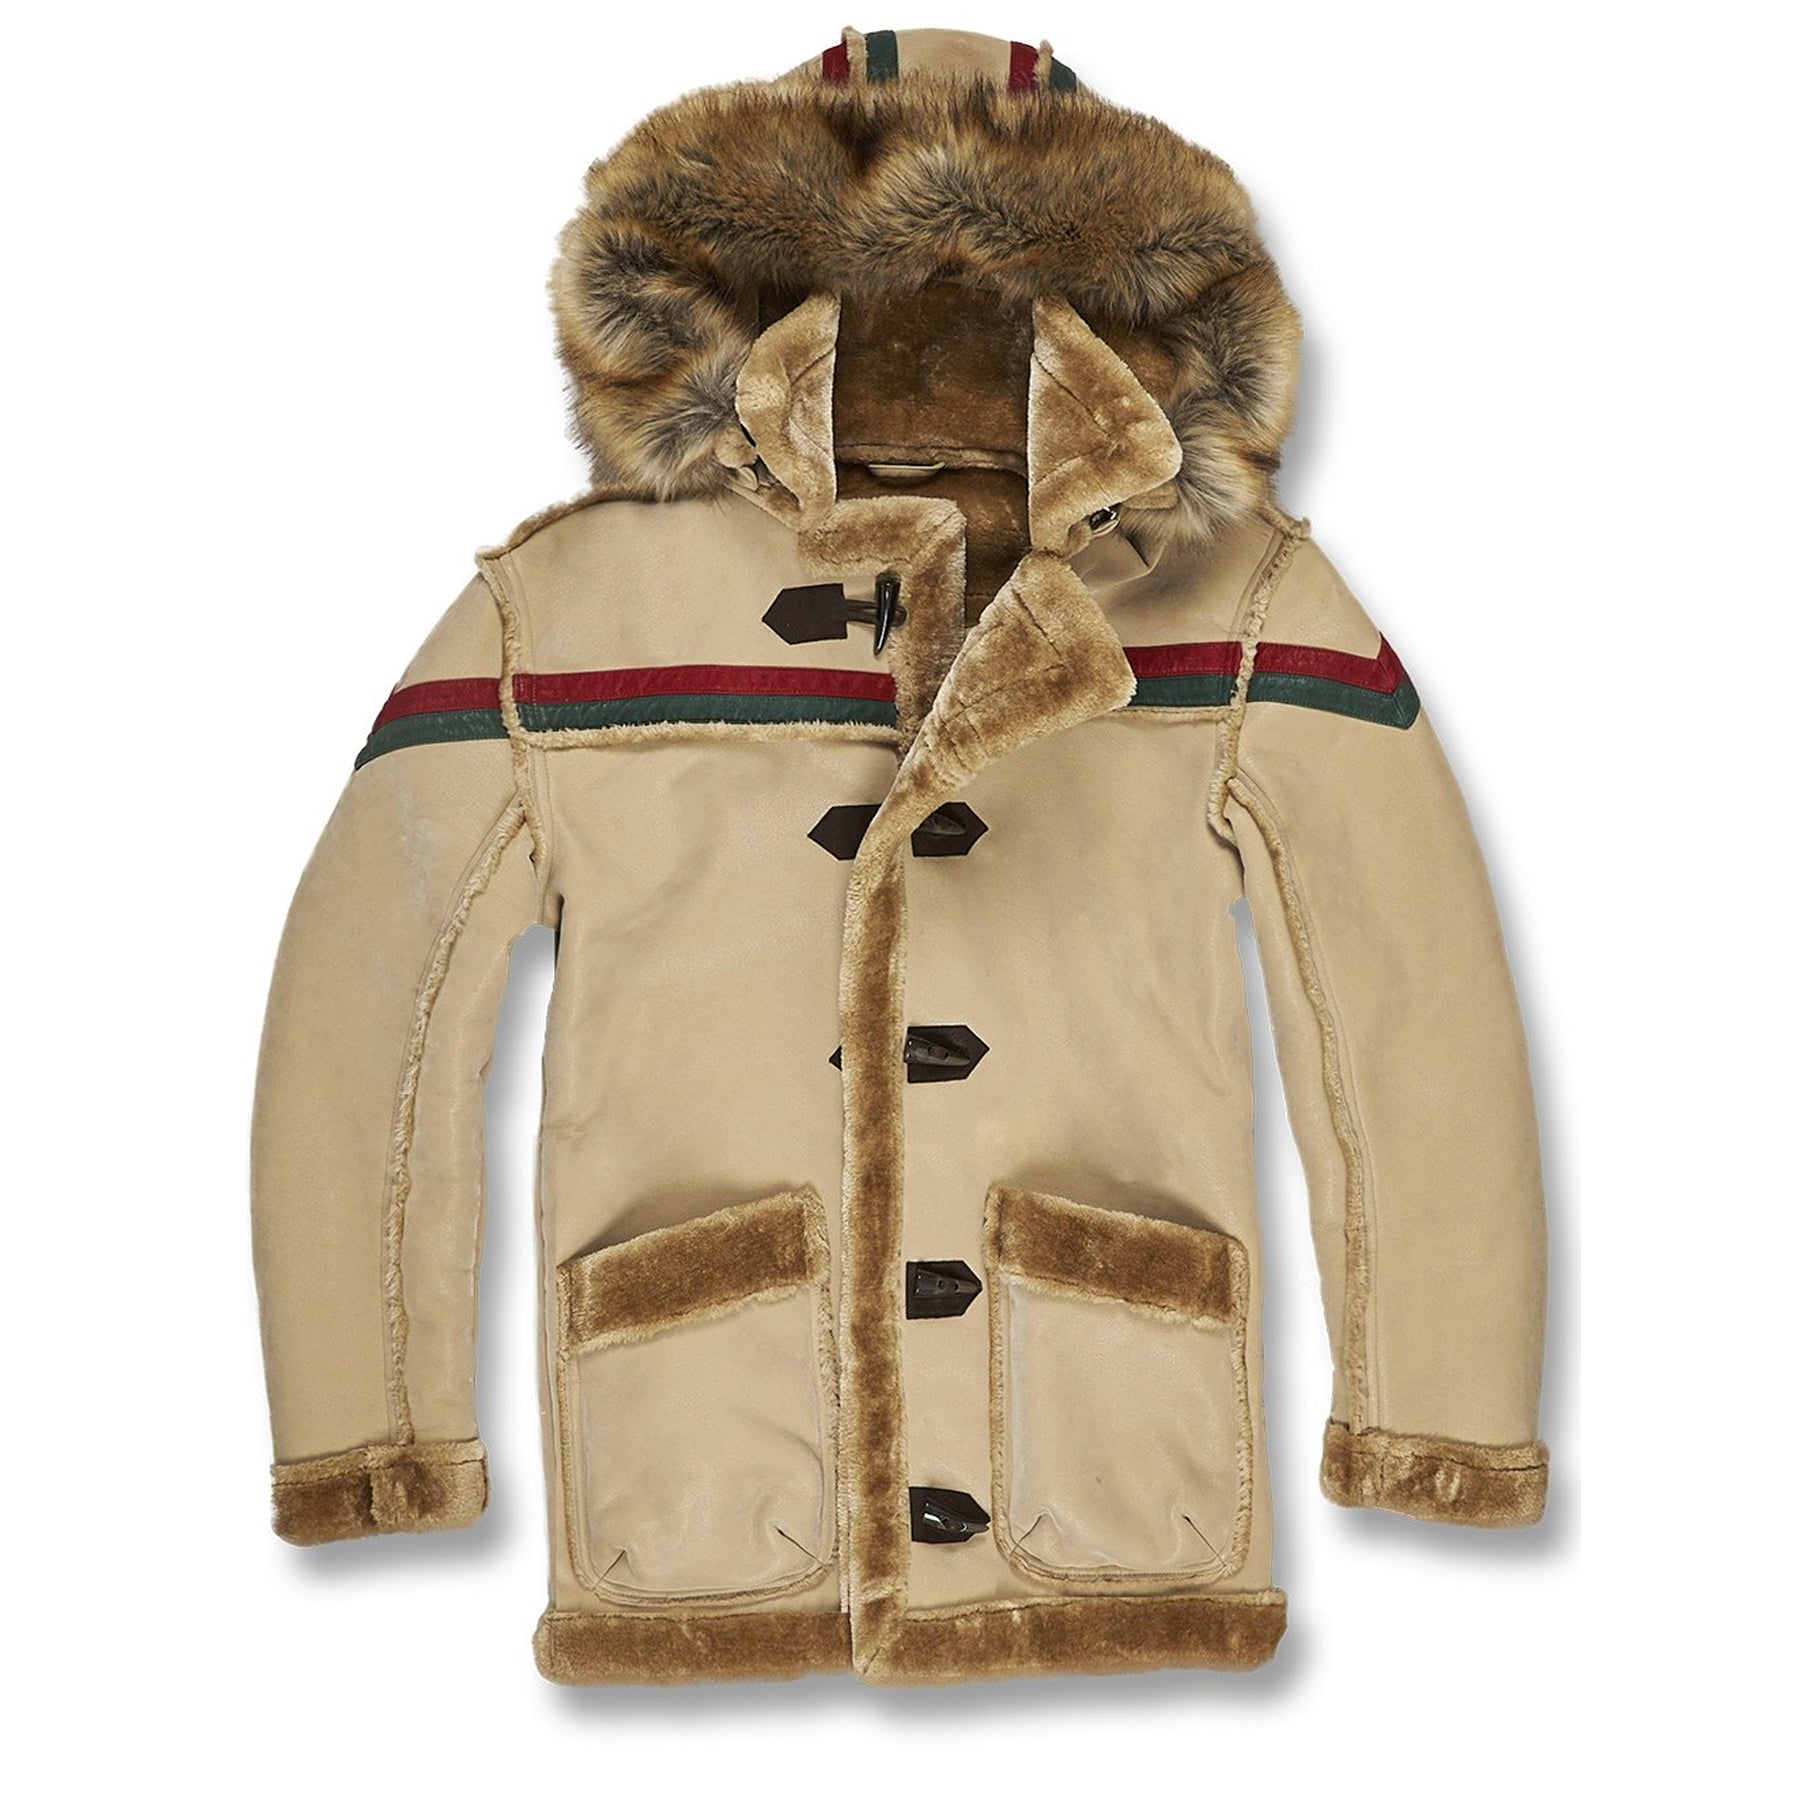 The mocha gucci colorway inspired faux fur shearling jacket has vegan fur  lined pockets wrist with 31c844f4b4f7